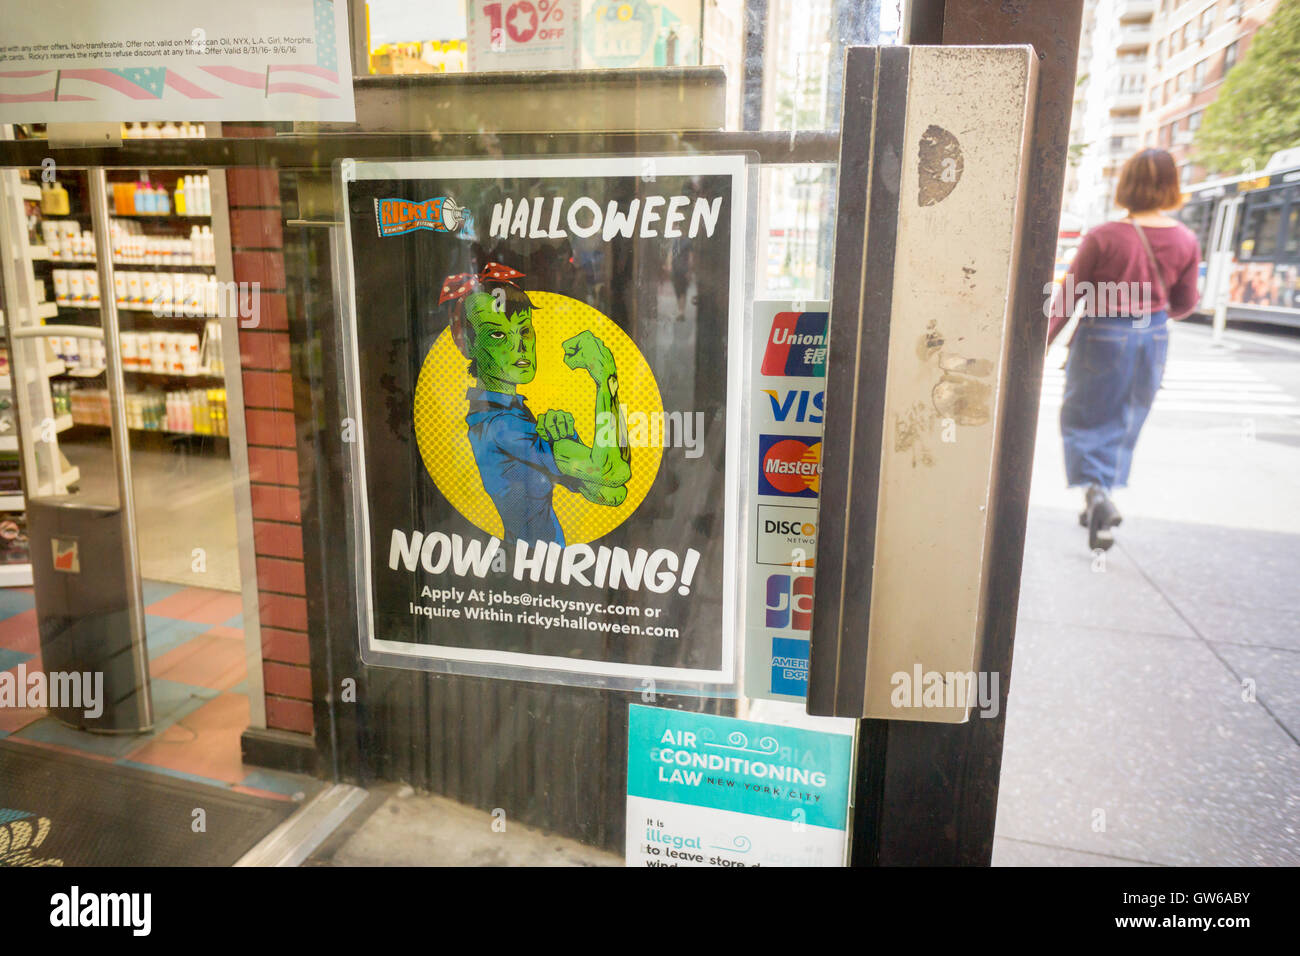 a ricky's cosmetics store in new york advertises that it is hiring